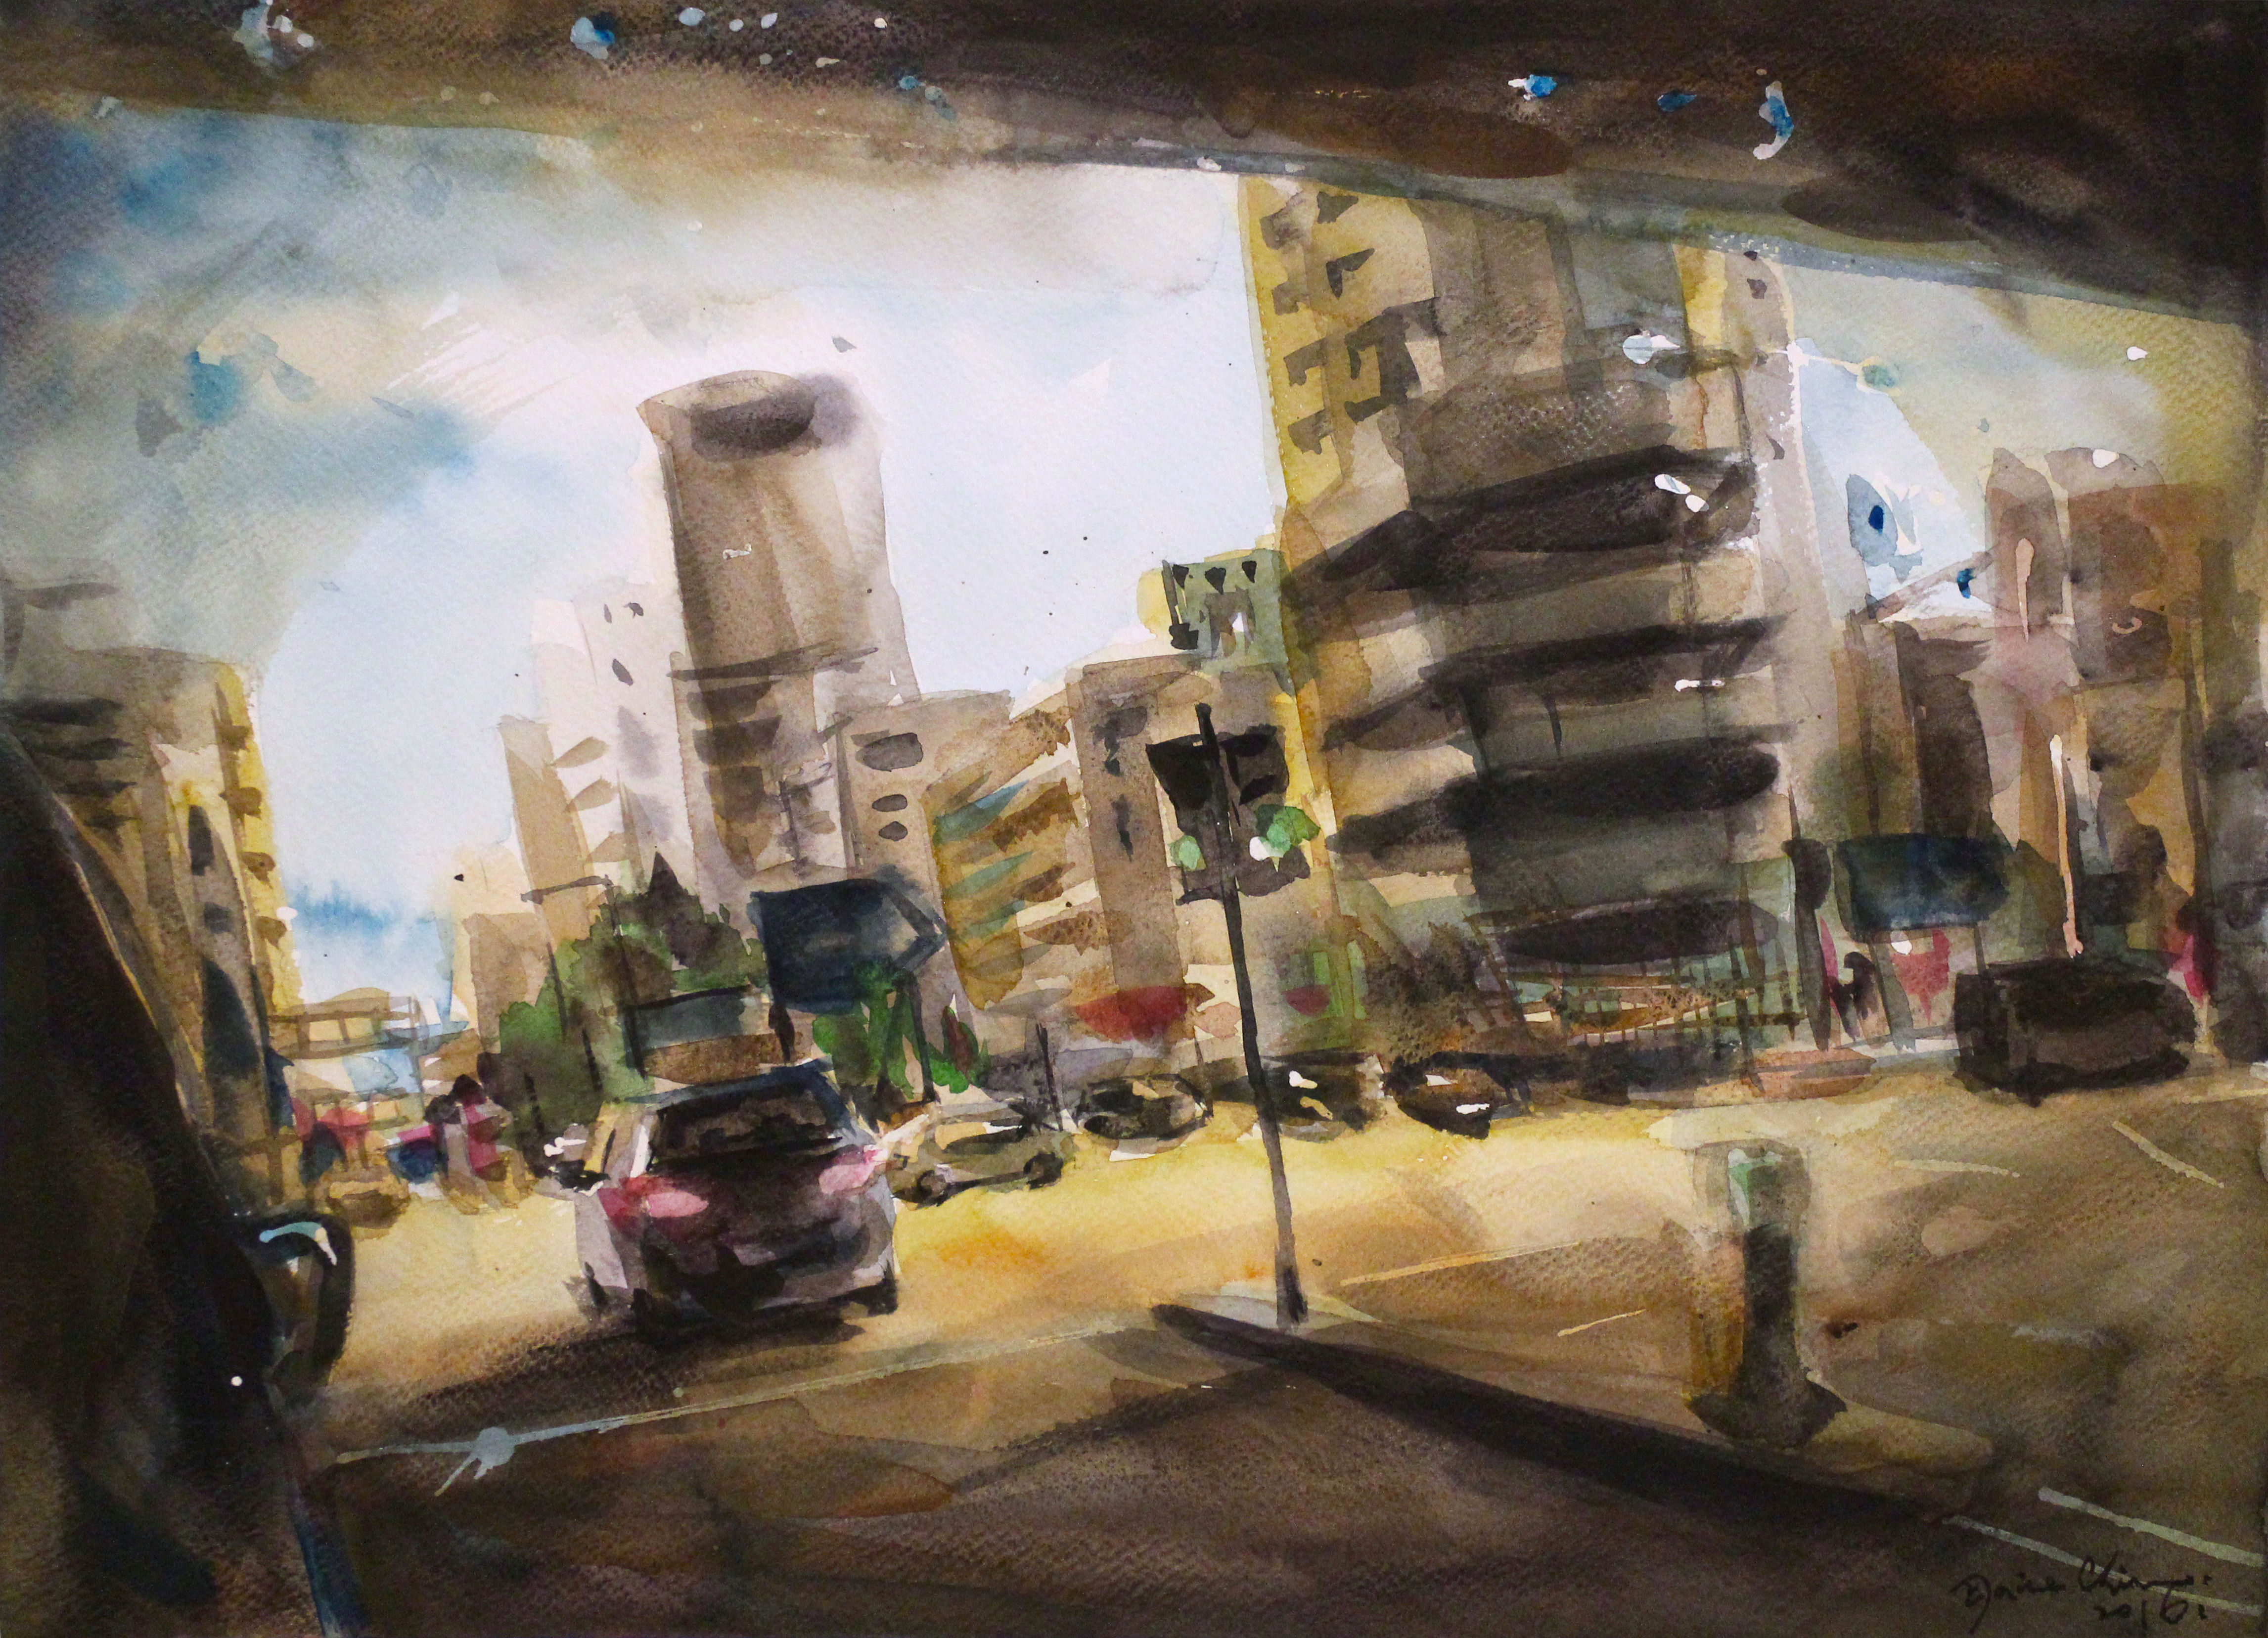 tgt-gallery_elaine-chiu_on-my-way_2016_watercolor-on-paper_36x48cm_hkd7500